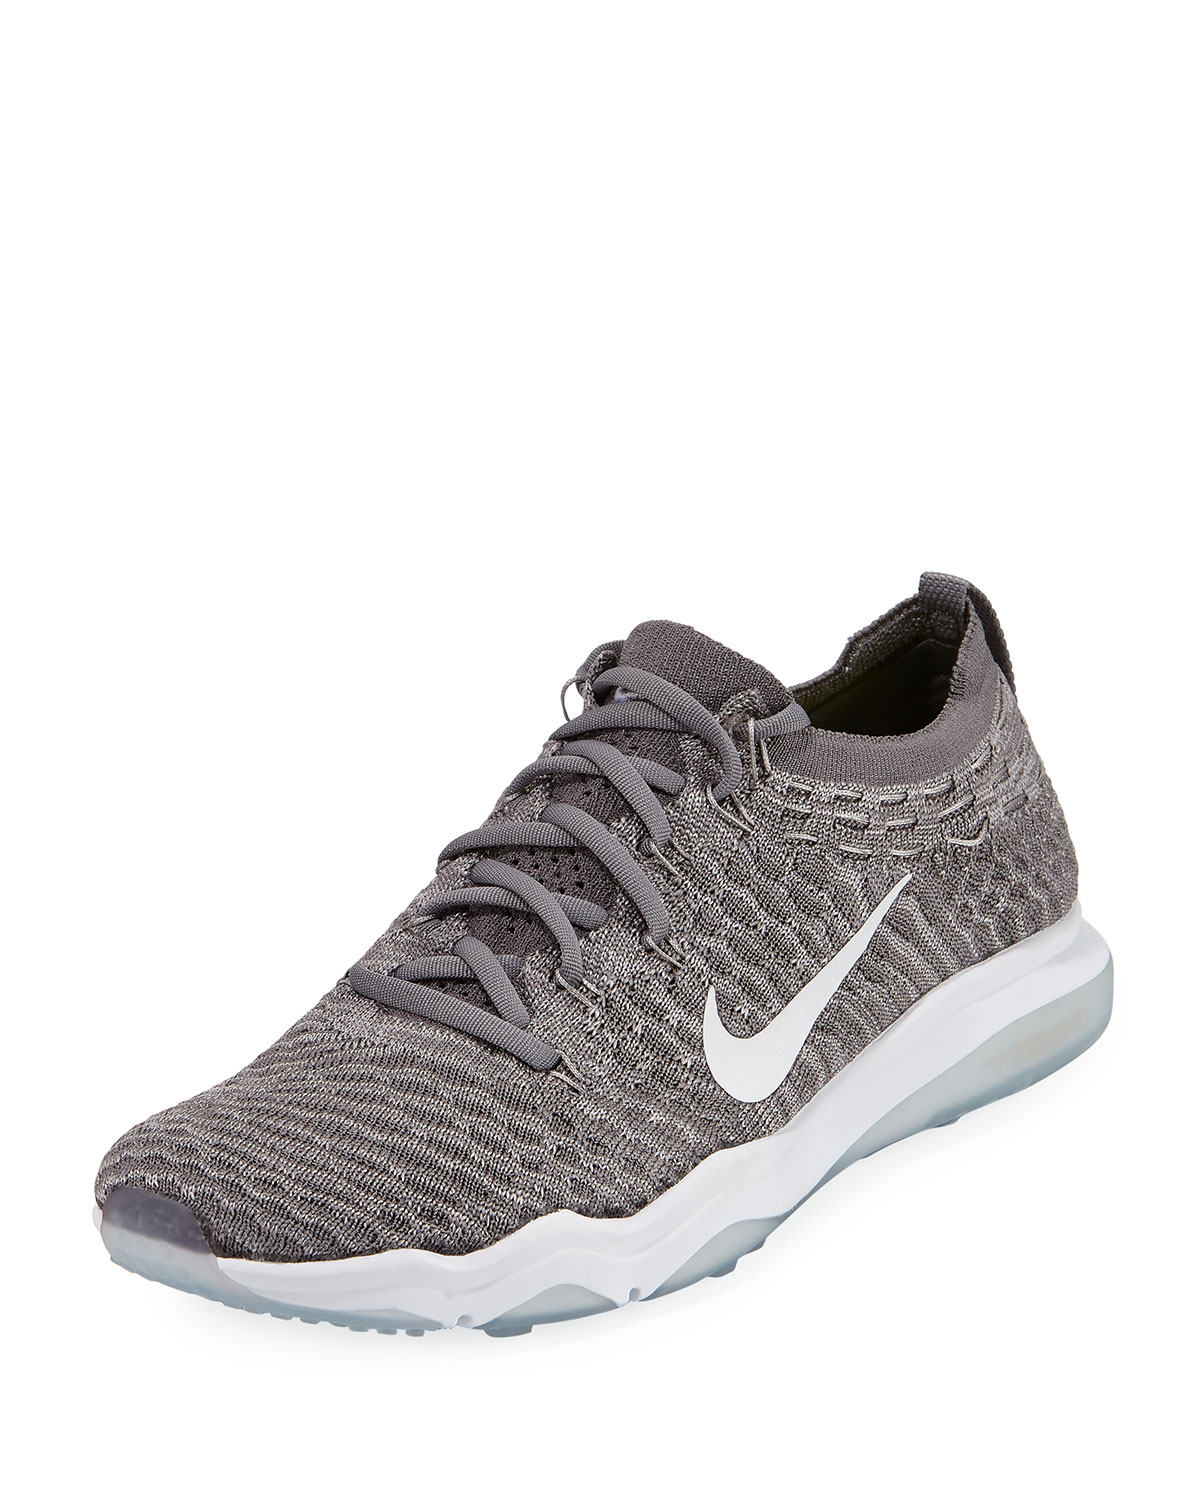 buy popular d6aee 2c2cf NikeAir Zoom Fearless Flyknit Lux Trainer Sneakers